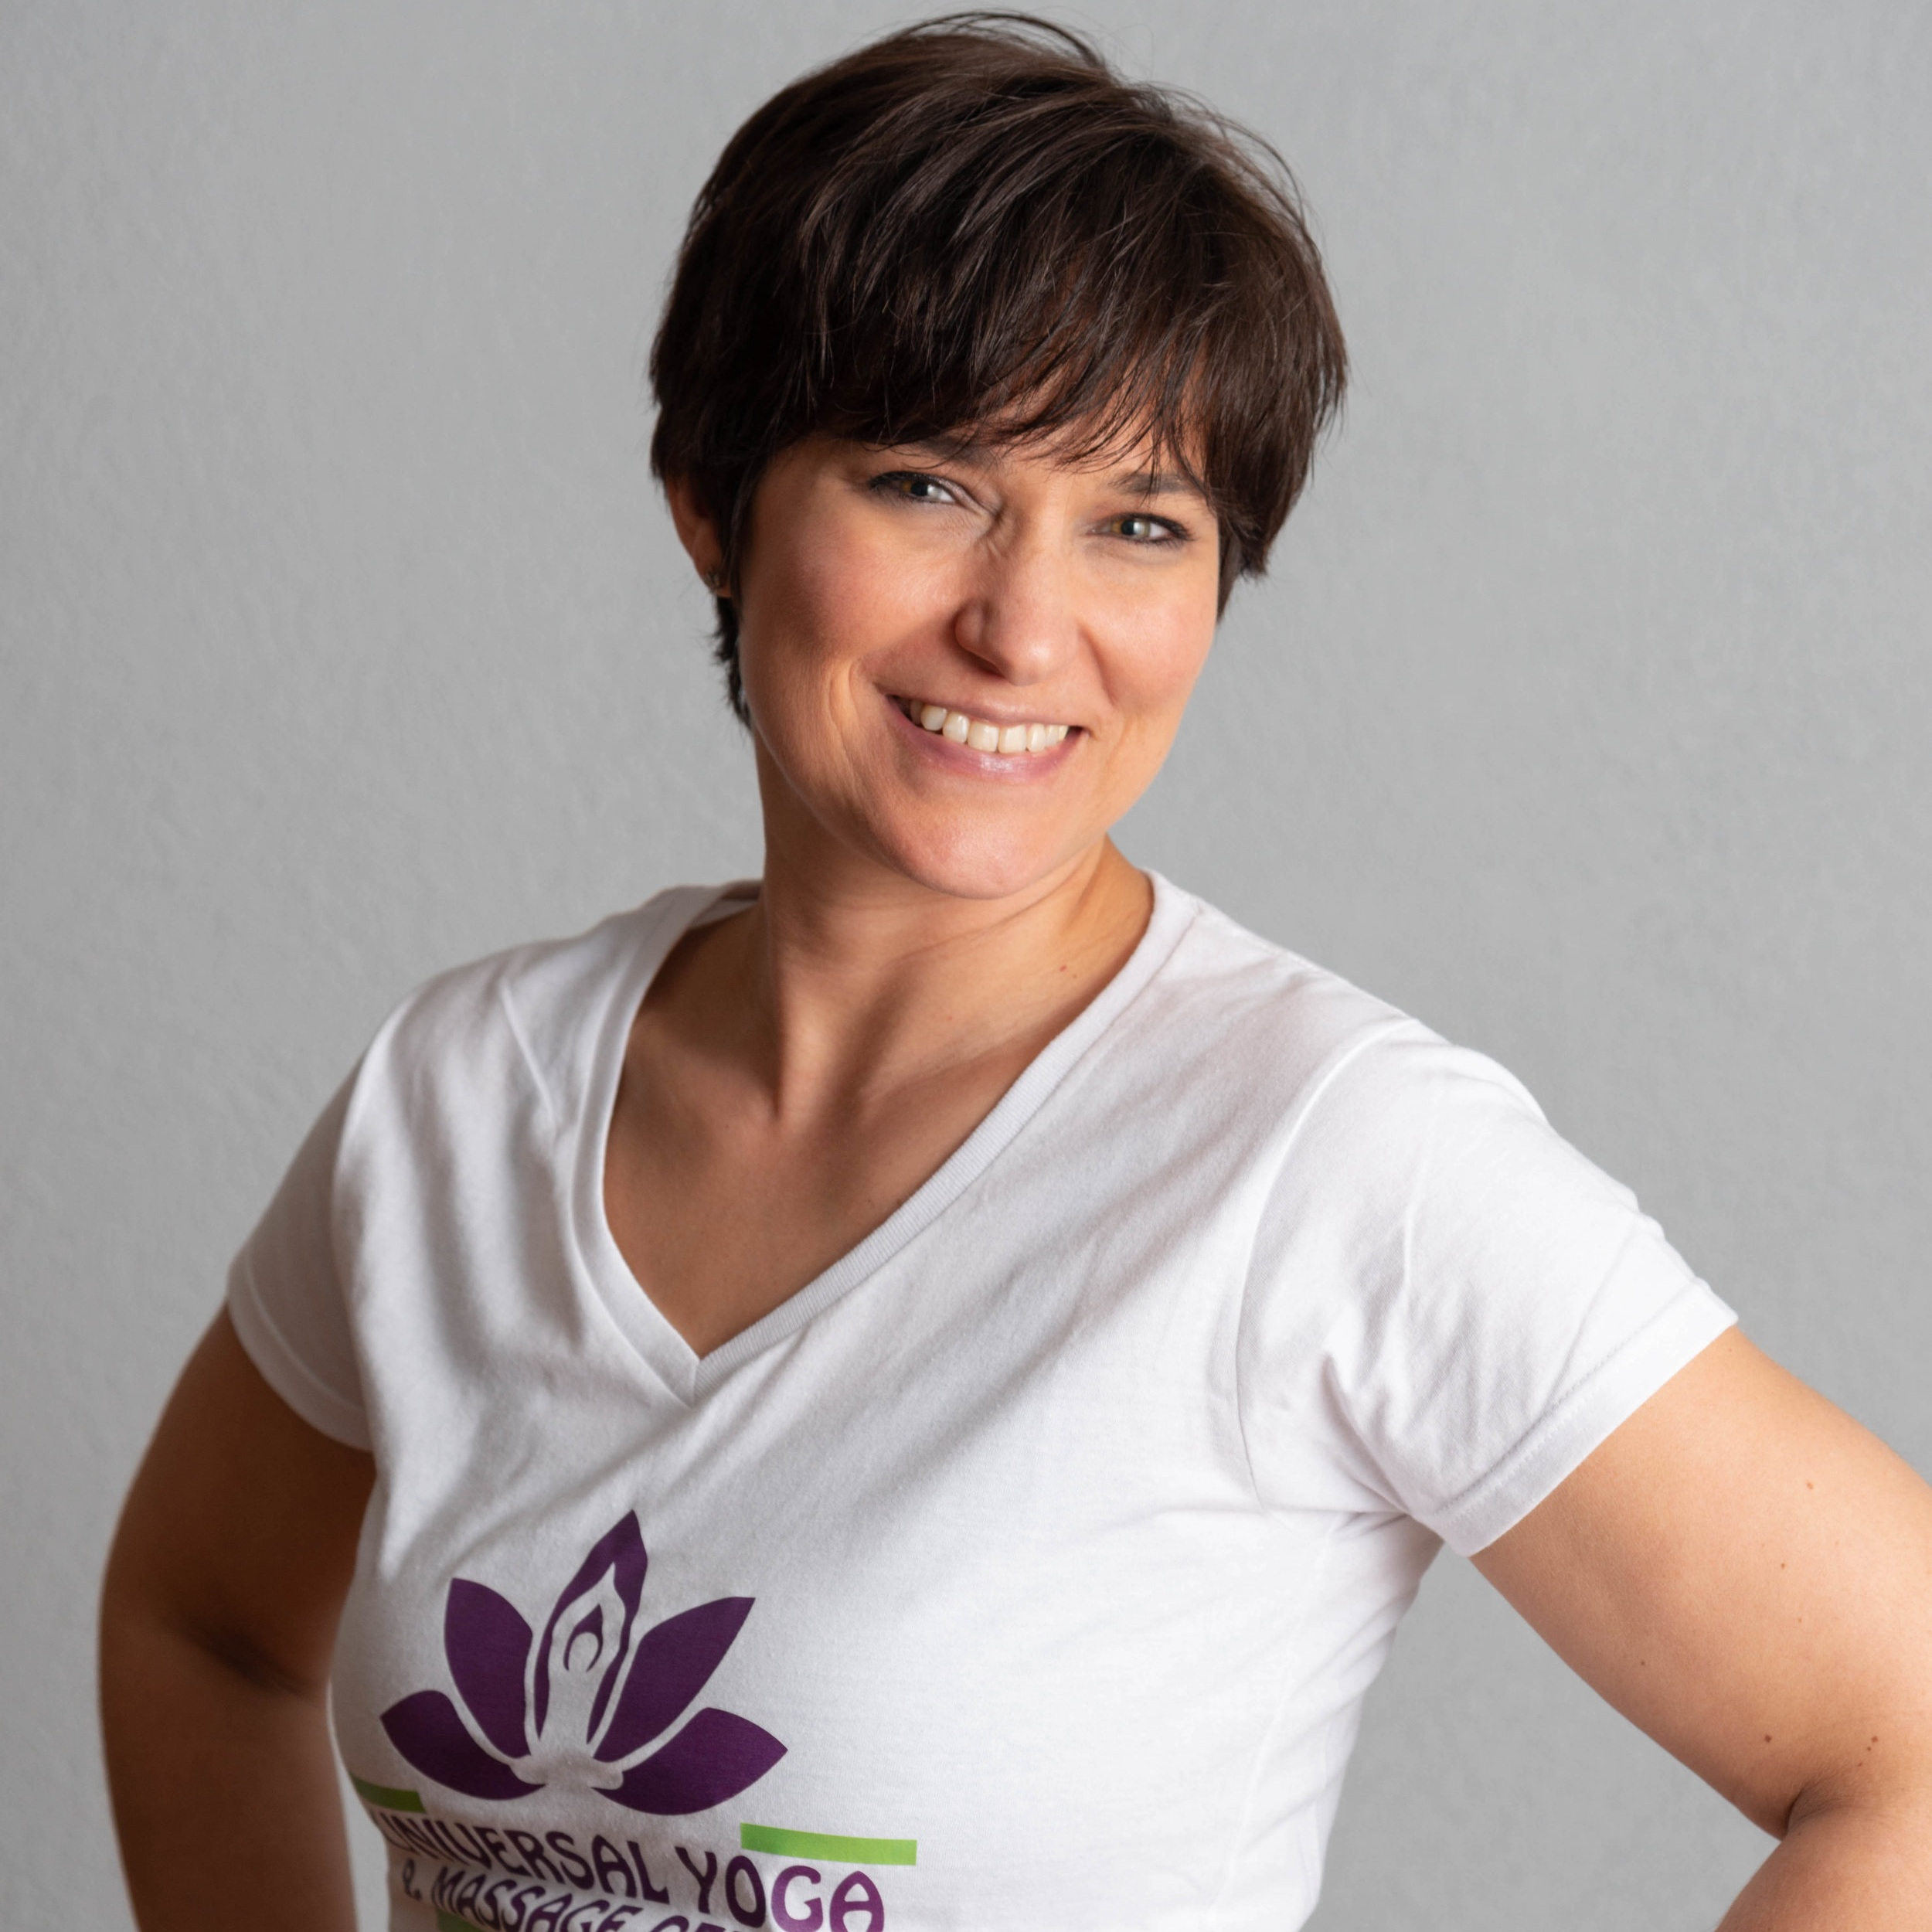 Audrey Ventura, LMT, C-IAYT, E-RYT - Audrey Ventura is a New York State Licensed Massage Therapist, a Nationally Certified Medical Massage Therapist, and the owner of Universal Yoga and Massage Center. She has over 20 years of experience in Massage Therapy. She is also a Certified Yoga Therapist through the International Association of Yoga Therapists, a Phoenix Rising Yoga Therapist, and certified in Yoga for the Low Back. Audrey's specific certifications include medical massage, geriatric massage, neuromuscular massage, sports massage, therapeutic stretching, neuromuscular reeducation, orthopeodic evaluation, and specific treatment for the neck, jaw, upper back, lower back, pelvis, legs, shoulders & arms. She is also certified in the Jaffe-Mellor Technique.Audrey is committed to helping you heal and maintain your health. She is continually educating herself and bringing that information into her business to give you the best results. Her great knowledge of the body and her experience give her the ability to assess and change your treatment or yoga practice whenever needed. She welcomes the opportunity to earn your trust and deliver you the best service in the industry.